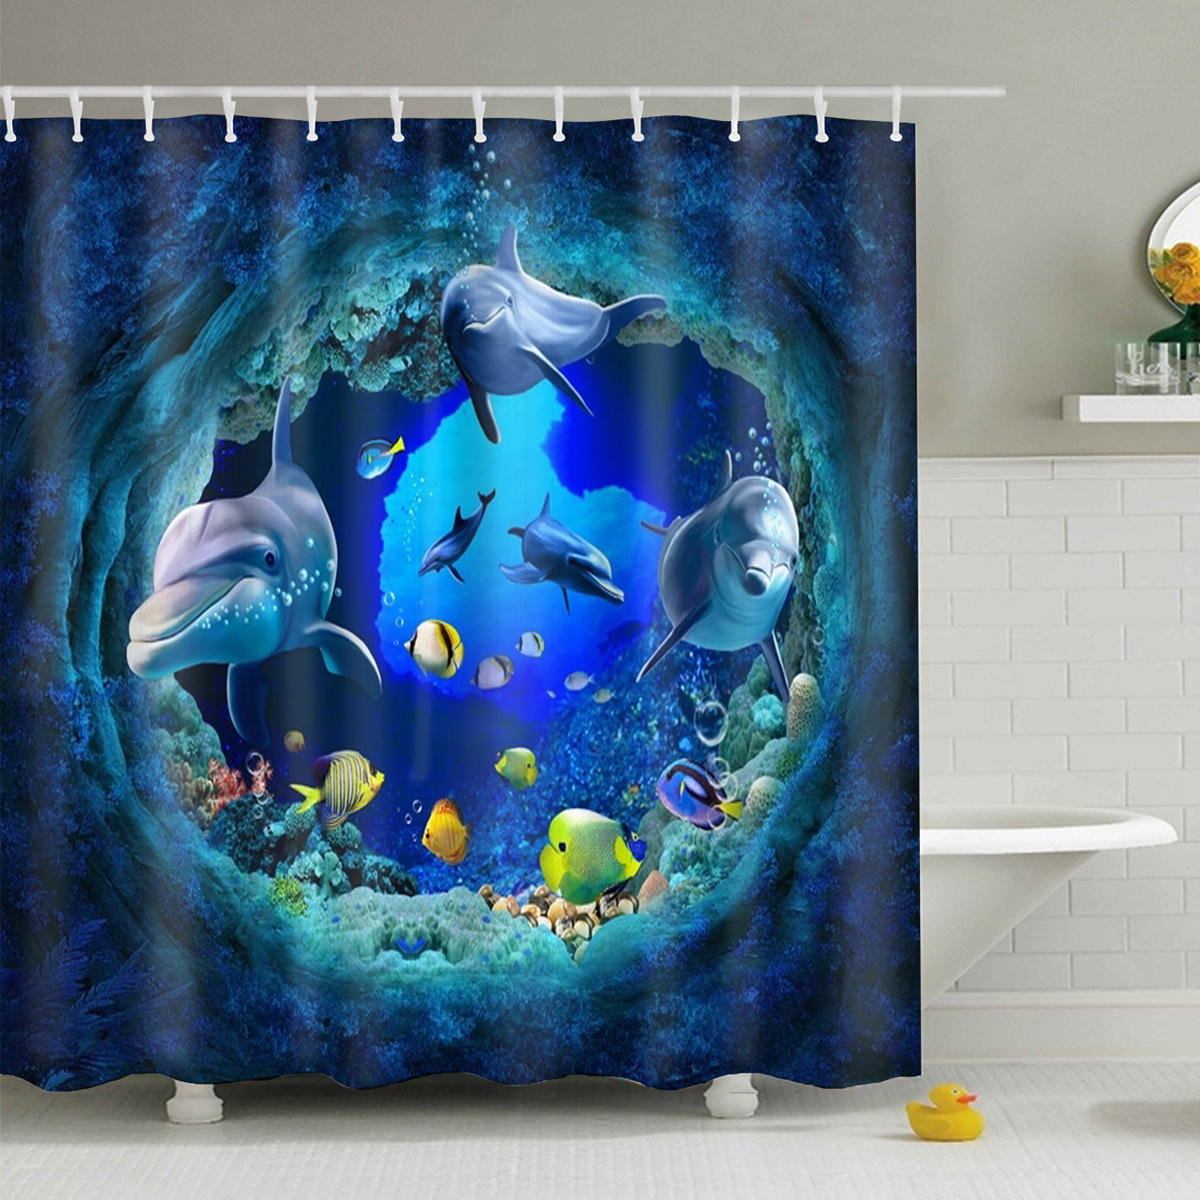 150 X180cm Wooden Texture With 10 Hooks Bathroom Shower Waterproof Curtains